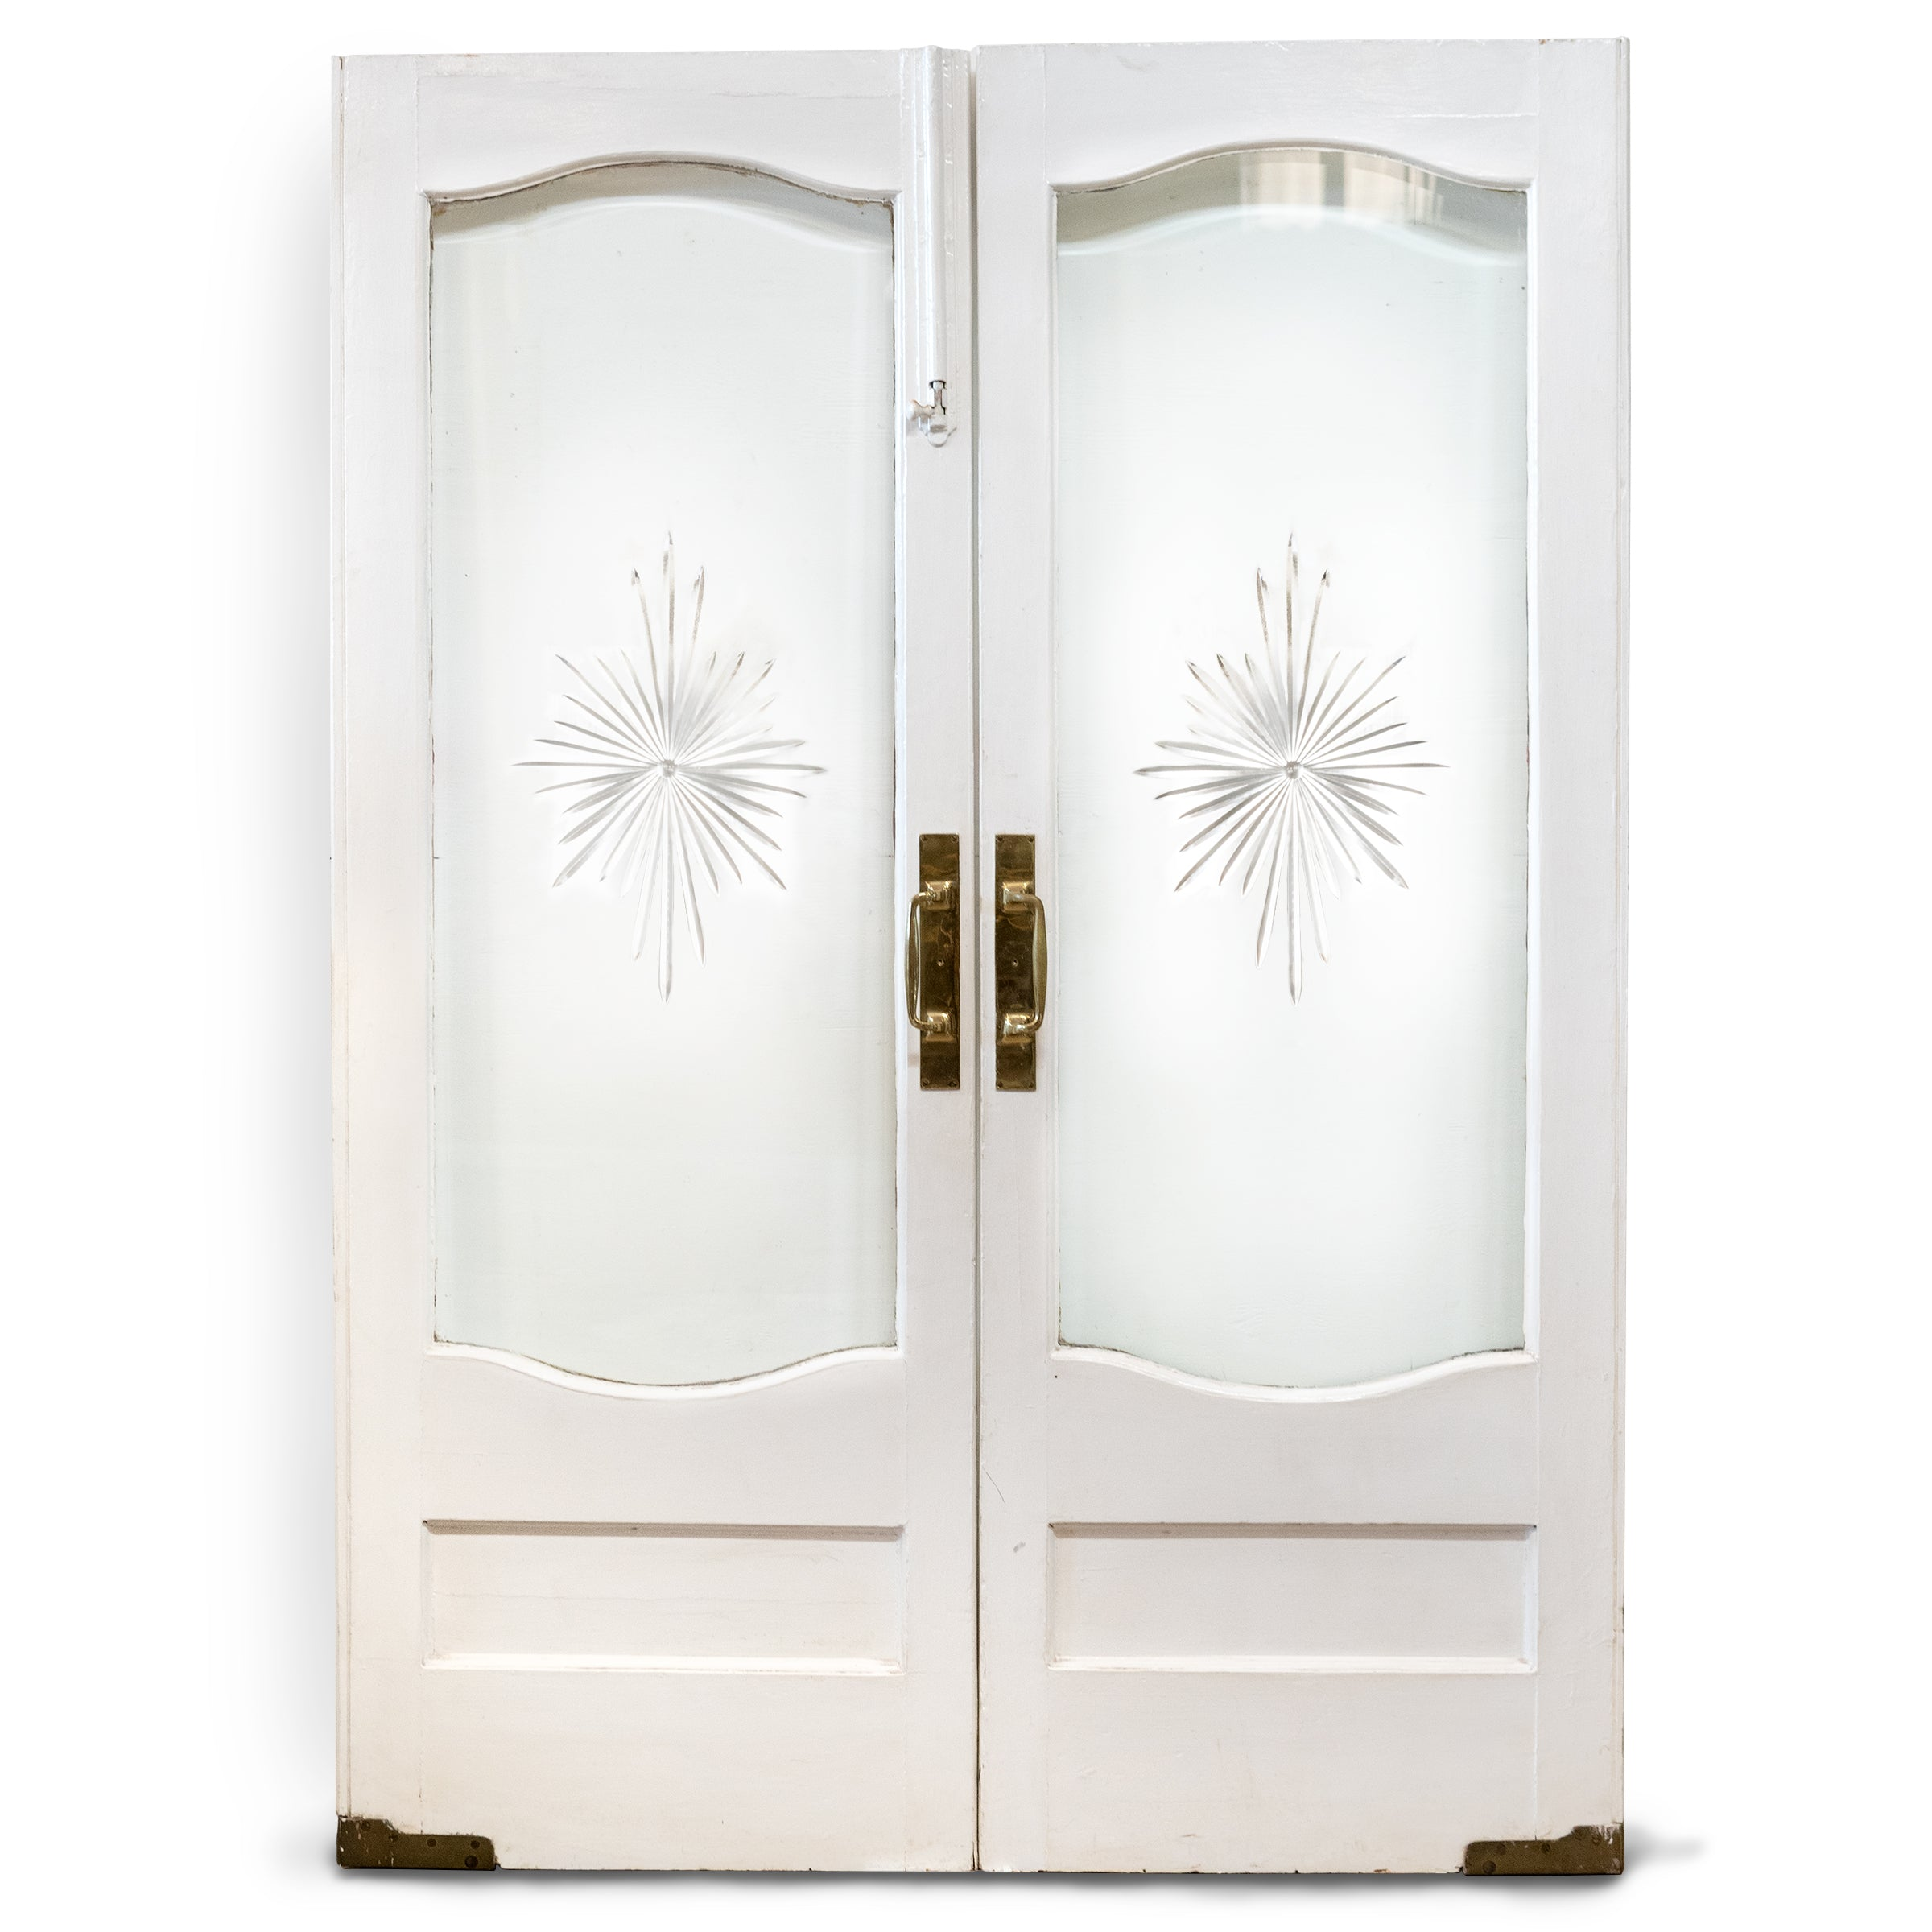 Antique Double Doors with Bevelled & Cut Glass 218.5 x 153.5cm